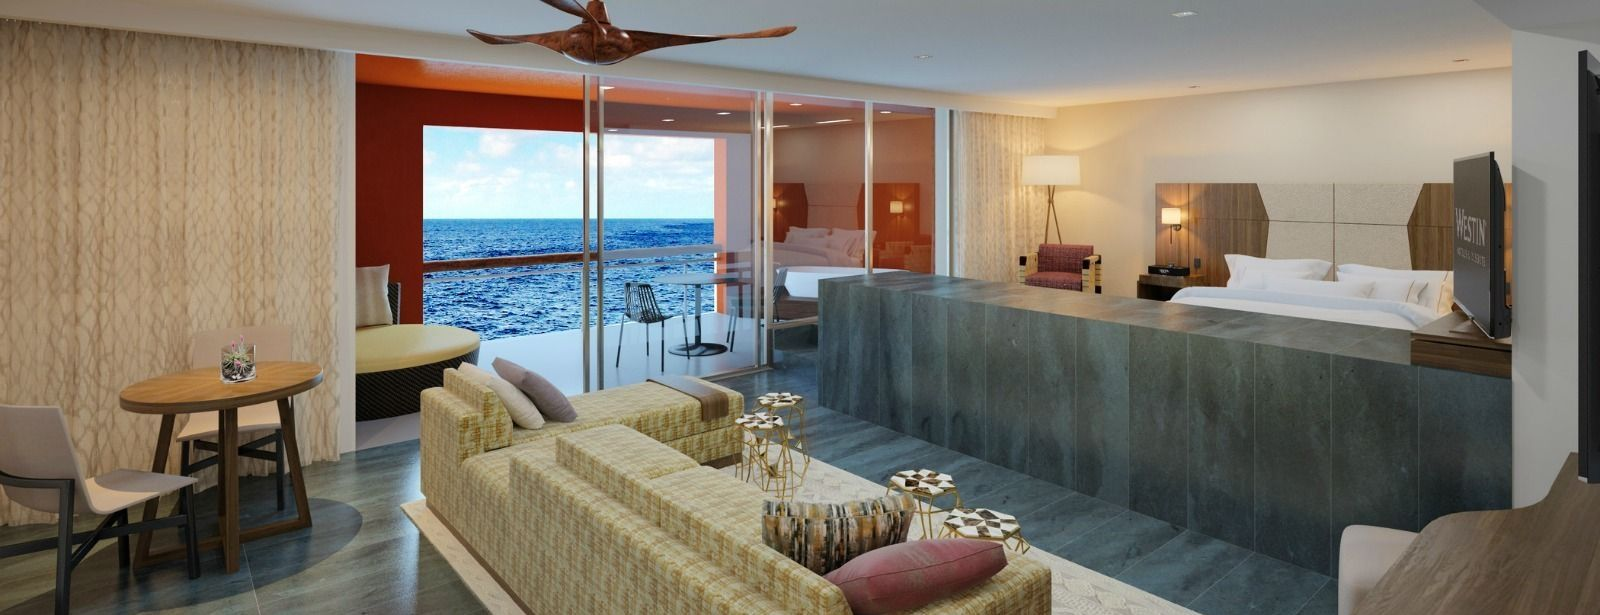 Westin Los Cabos - One-Bedroom Ocean Villa